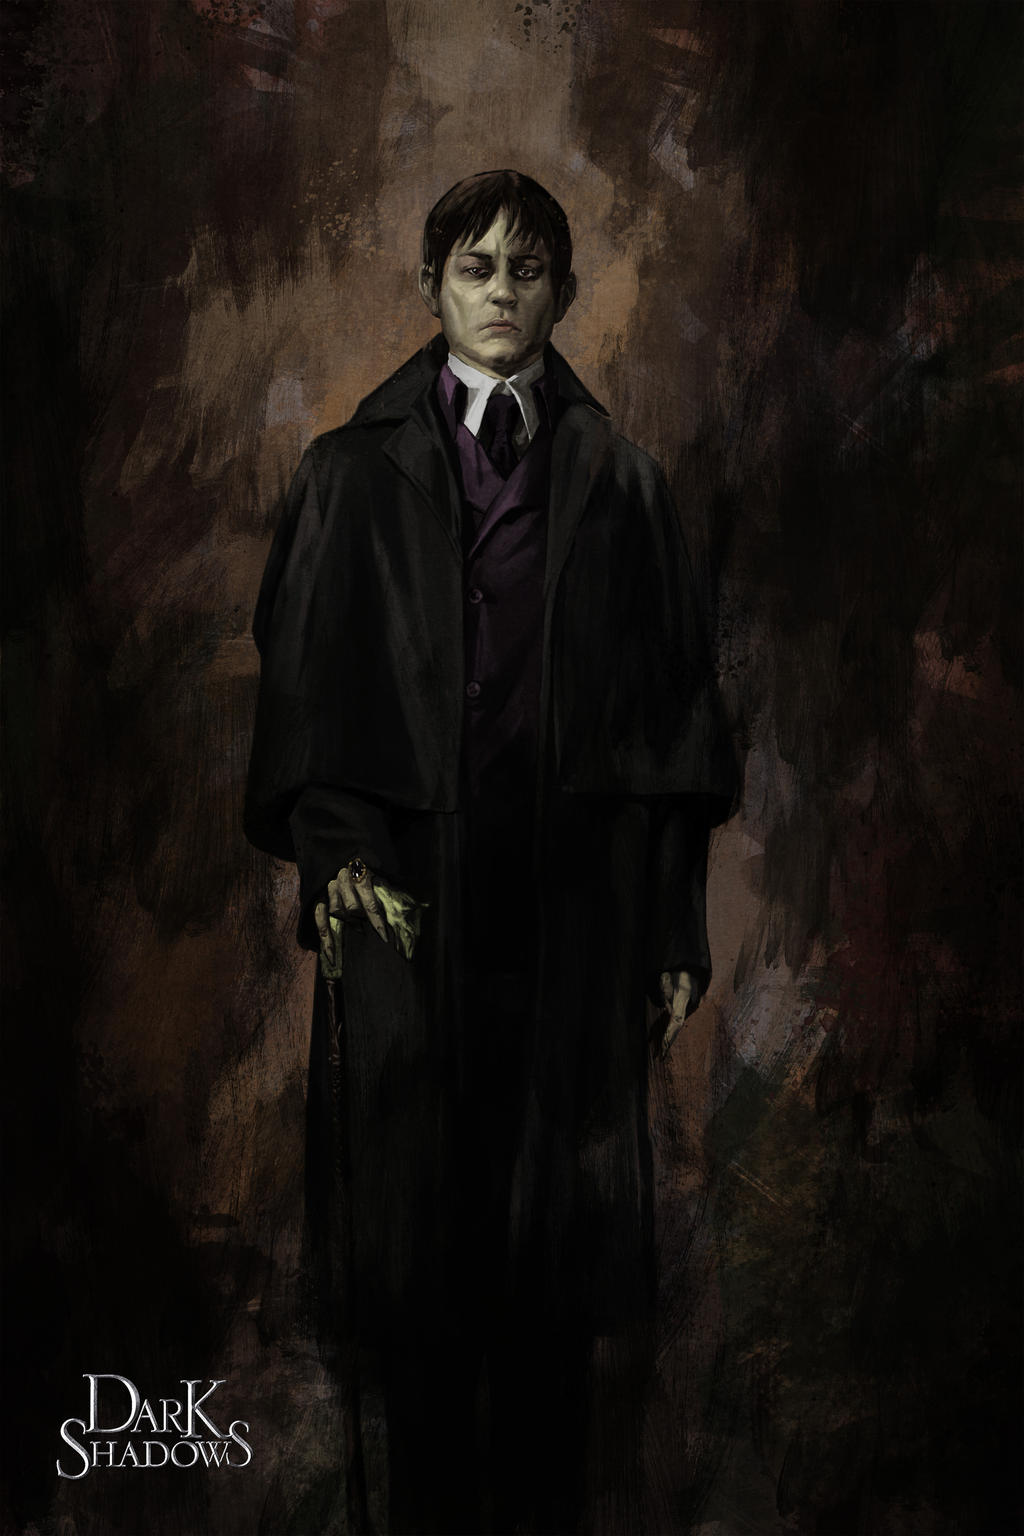 Dark Shadows: Barnabas Portrait by poojipoo